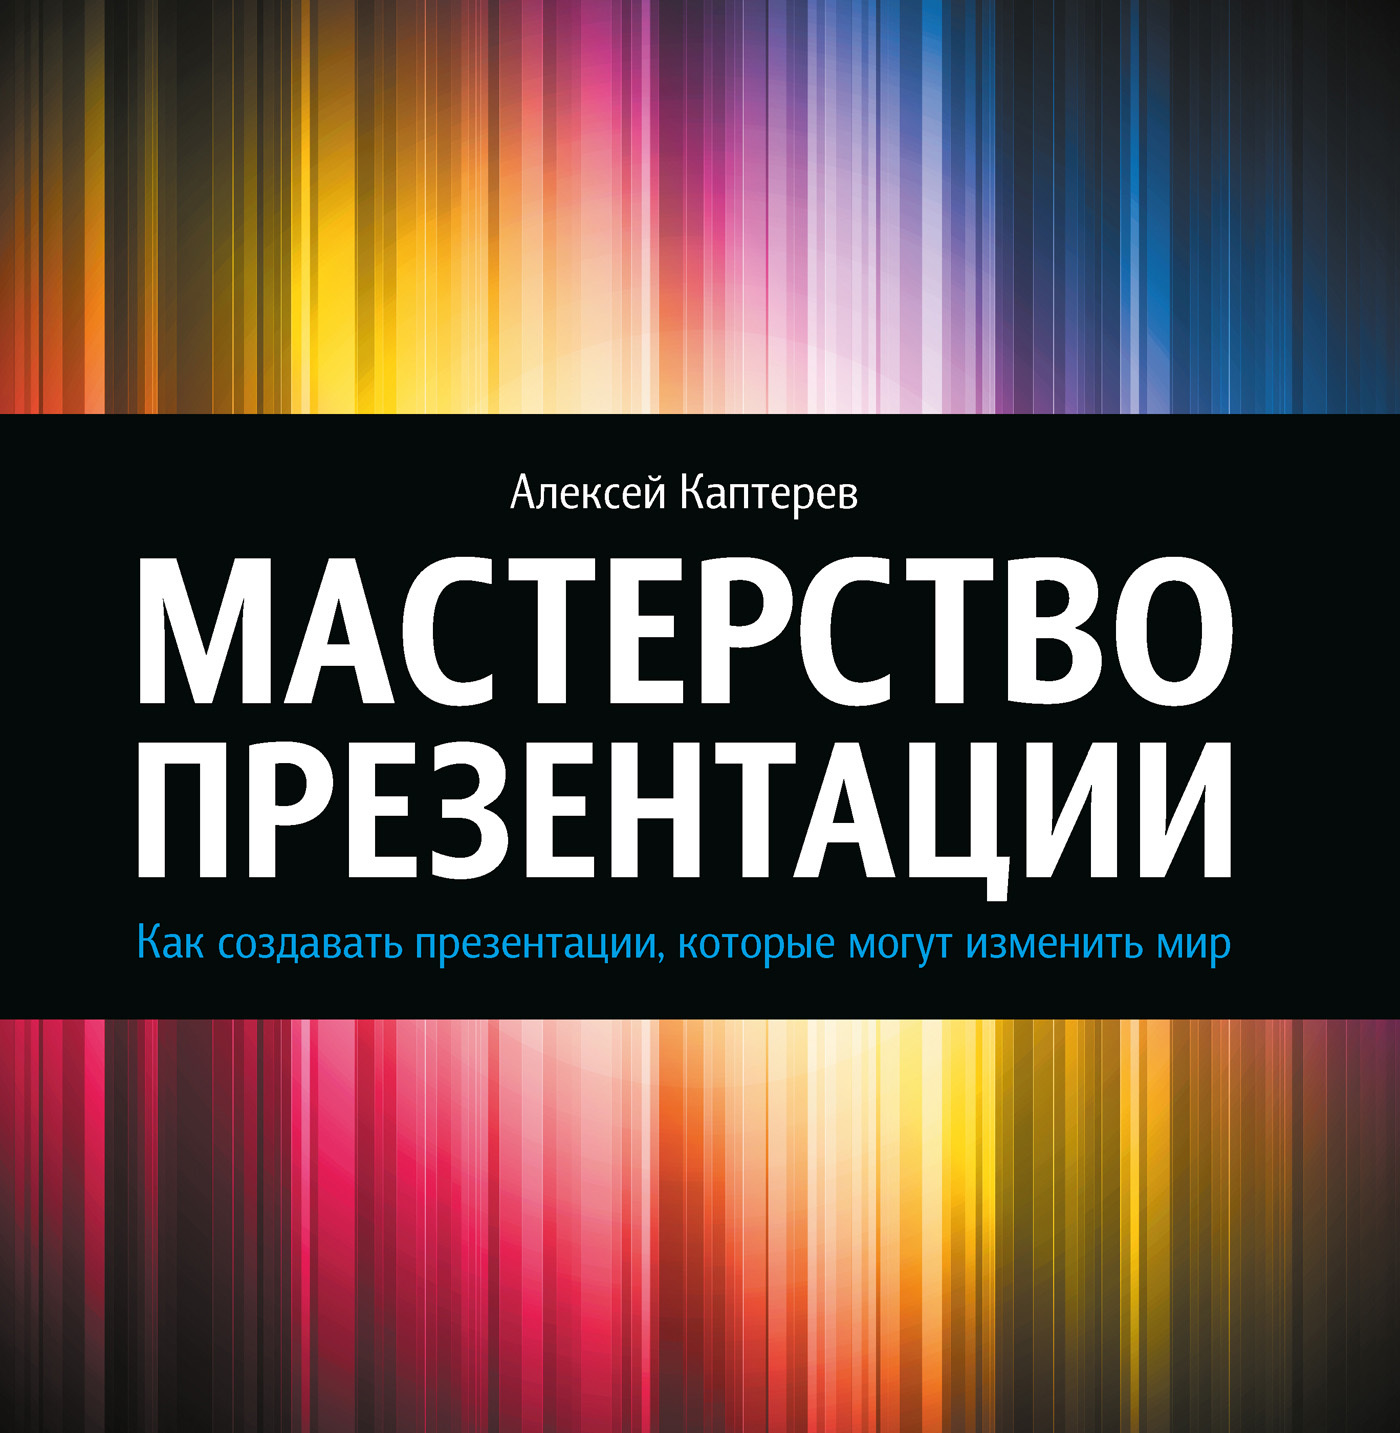 Алексей Каптерев Мастерство презентации. Как создавать презентации, которые могут изменить мир bone print self tie bikini set